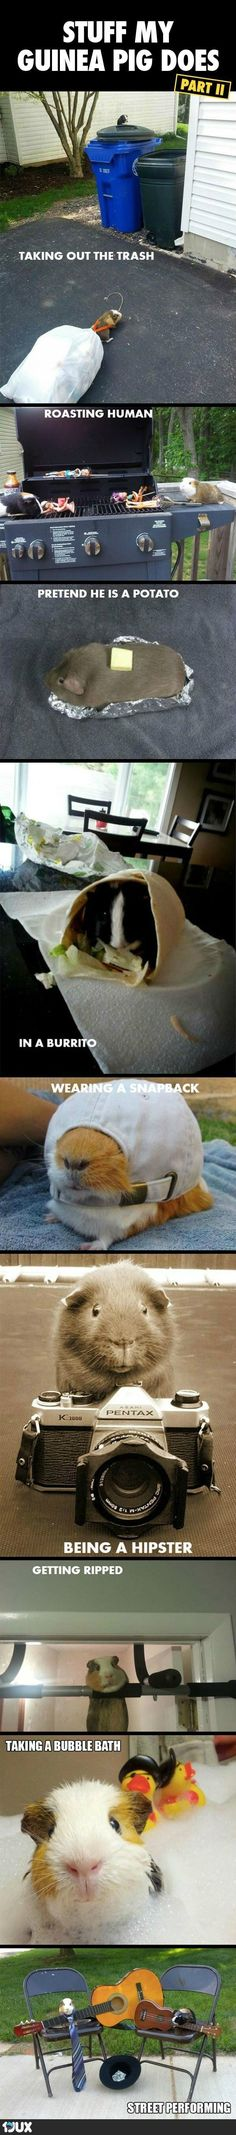 Stuff My Guinea Pig Does. The burrito was totally my Halloween costume idea for the pig.... I'm still gonna go with it.